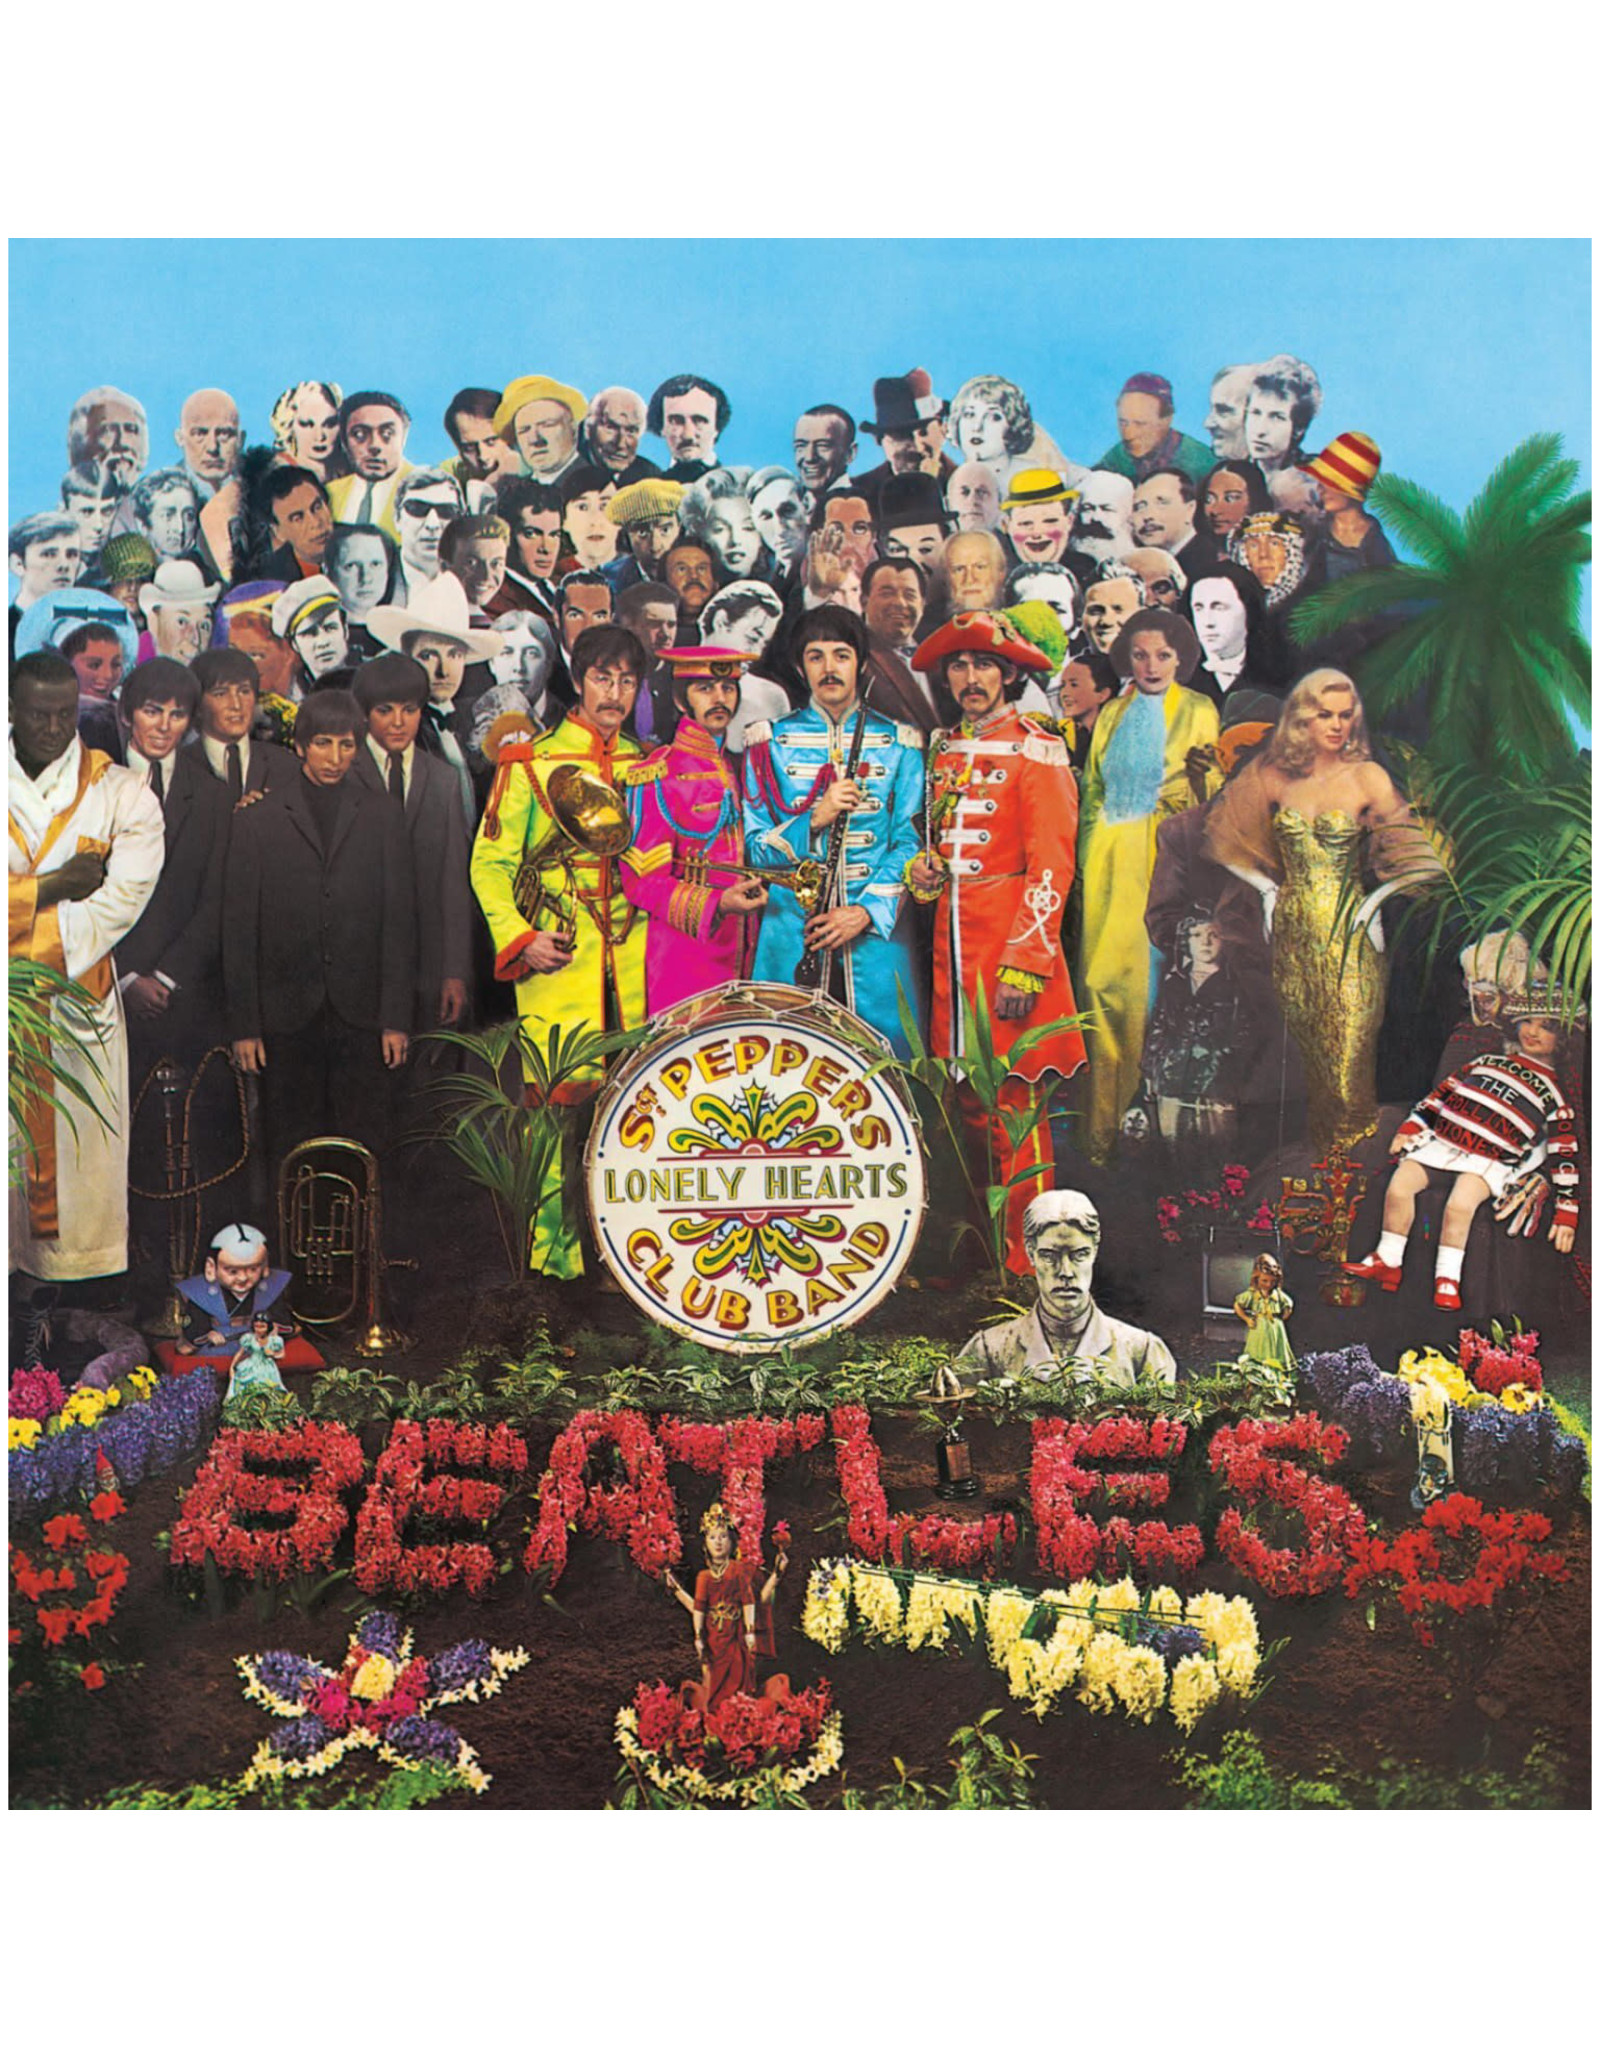 Beatles: Sgt. Pepper's Lonely Hearts Club Band (2017 Sgt. Pepper Stereo mix) LP